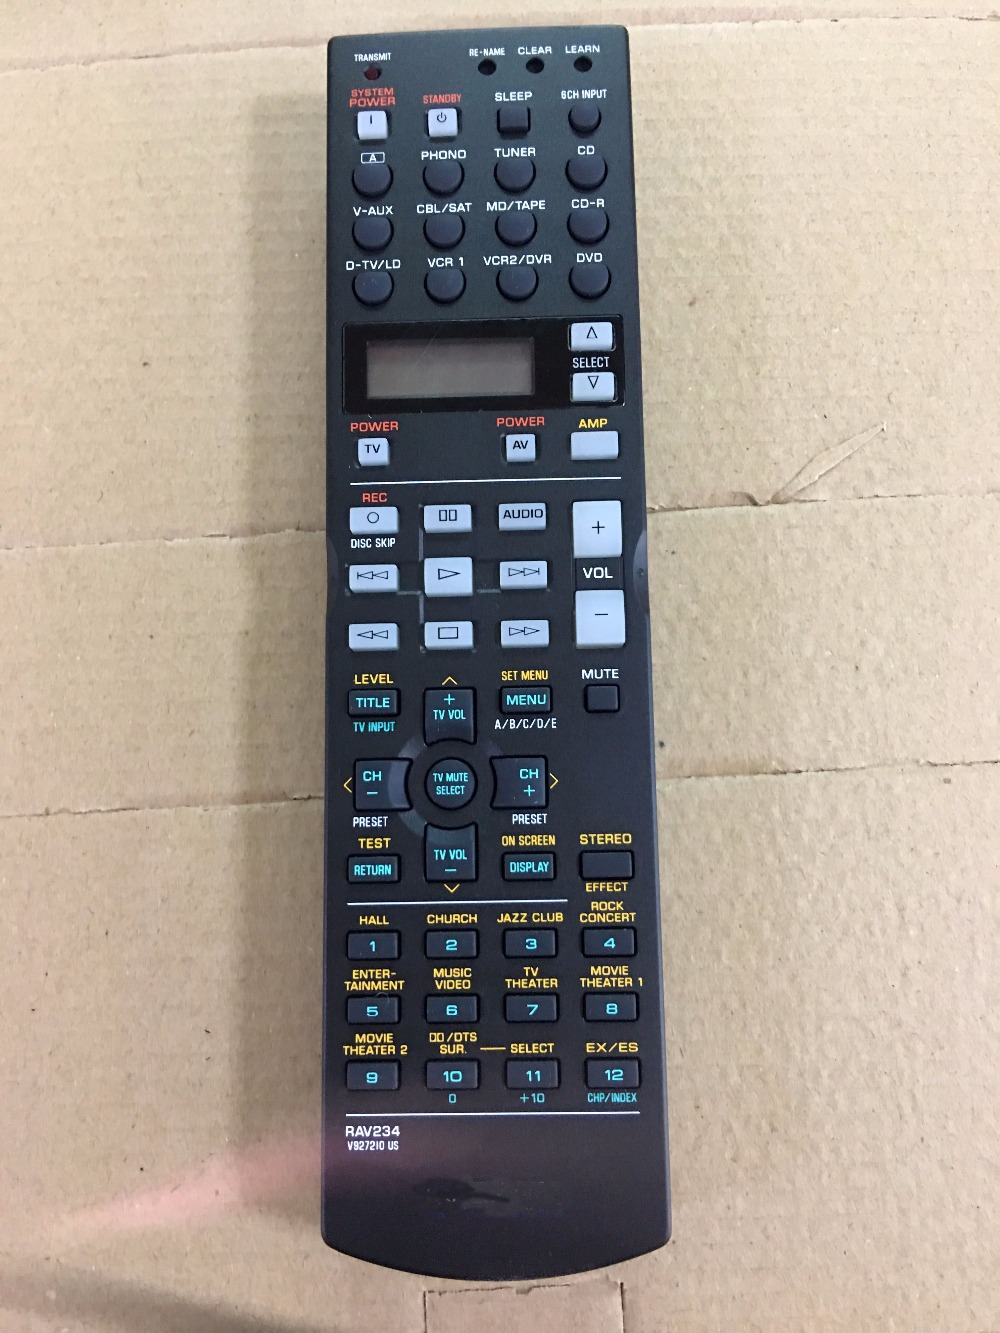 NEW Original RAV234 V927210 US Remote Control For YAMAHA theater AV Amplifier RX-V740 DSP-AX1300 DSP-AX740 HTR-5590 RX-V1200 цена 2017